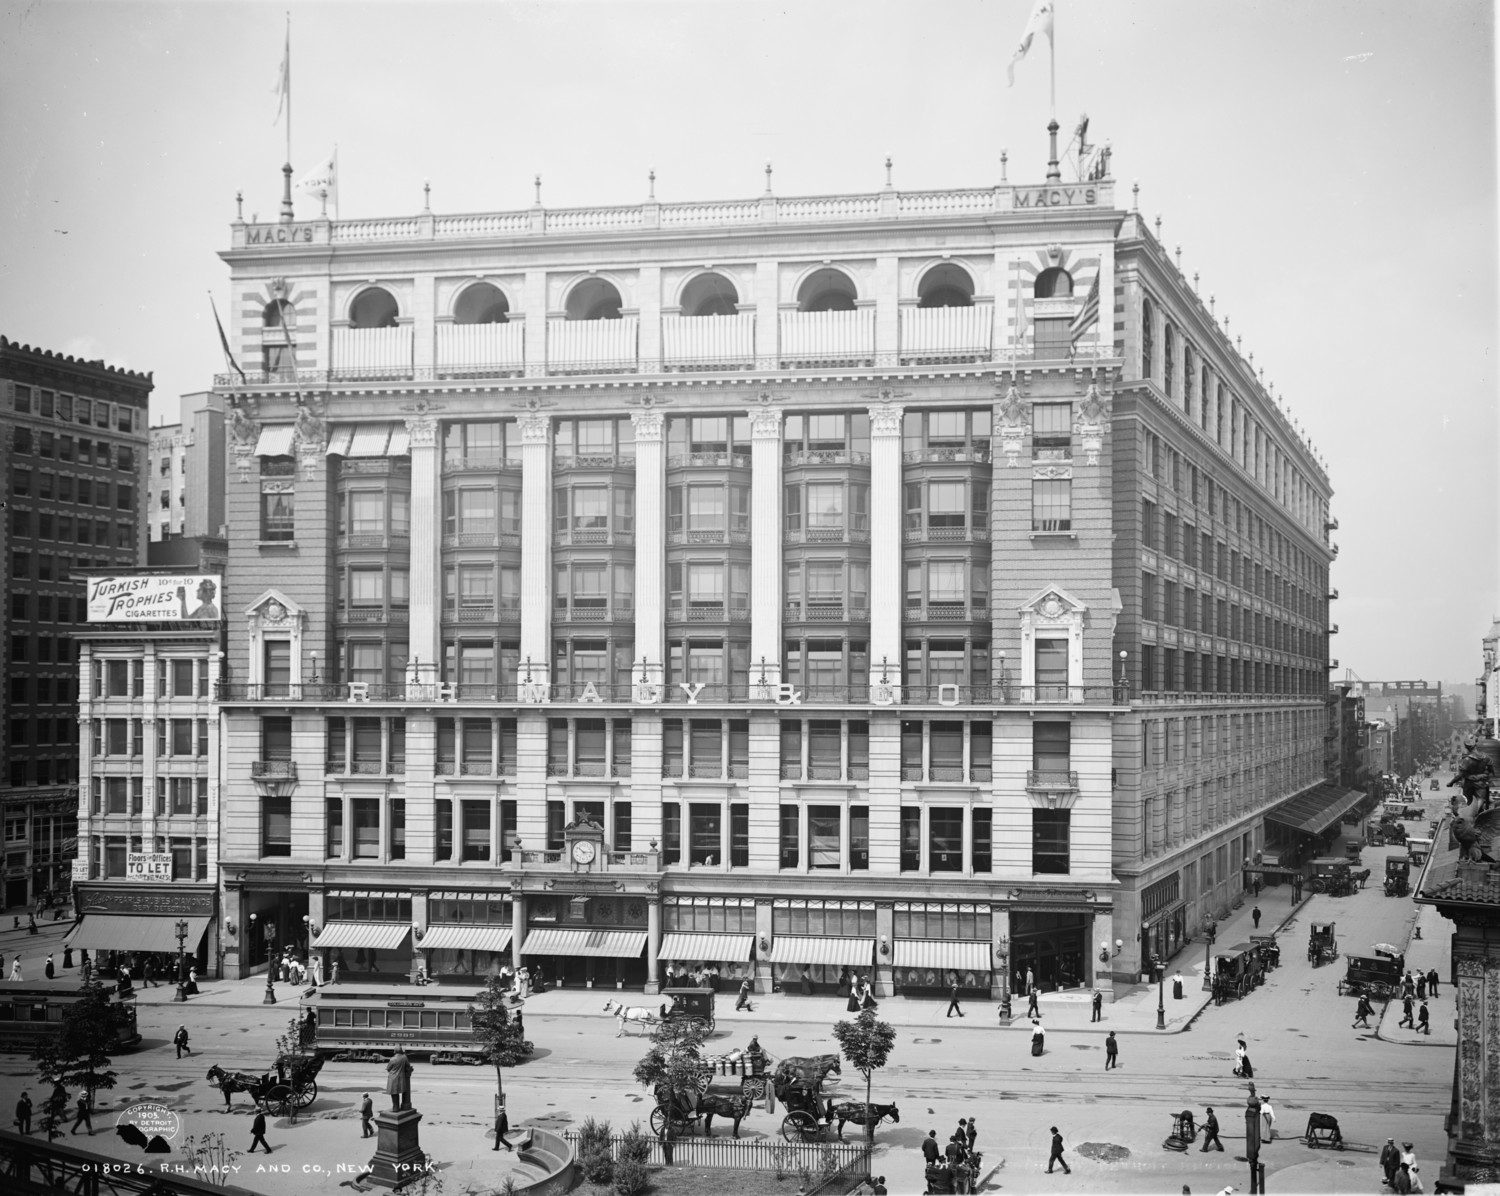 Around Macy's Herald Square – The Greatest Store In The World, 1905